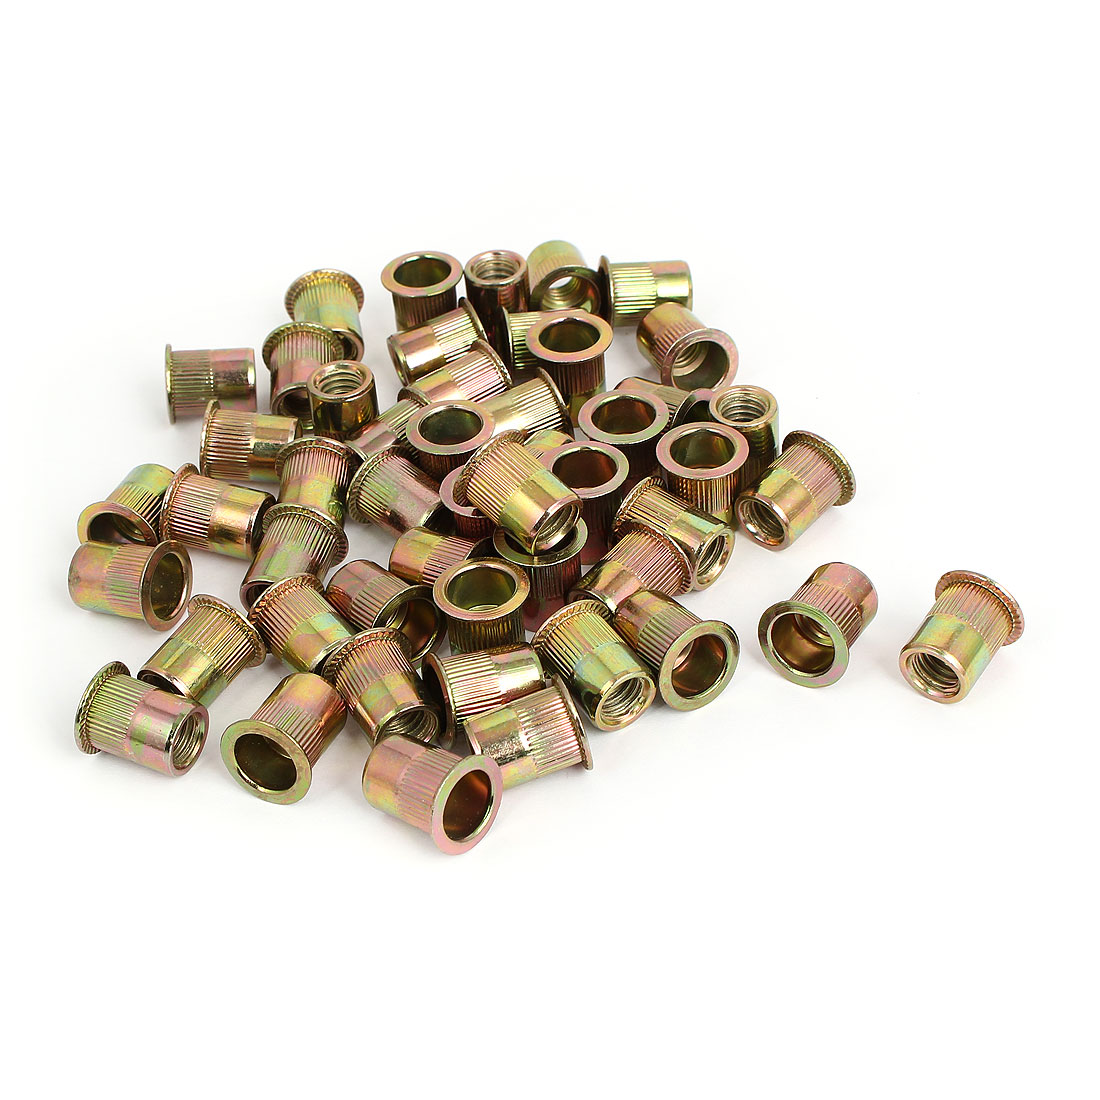 "3/8"" Thread 18mm Long Rivet Nut Insert Nutsert 50pcs"